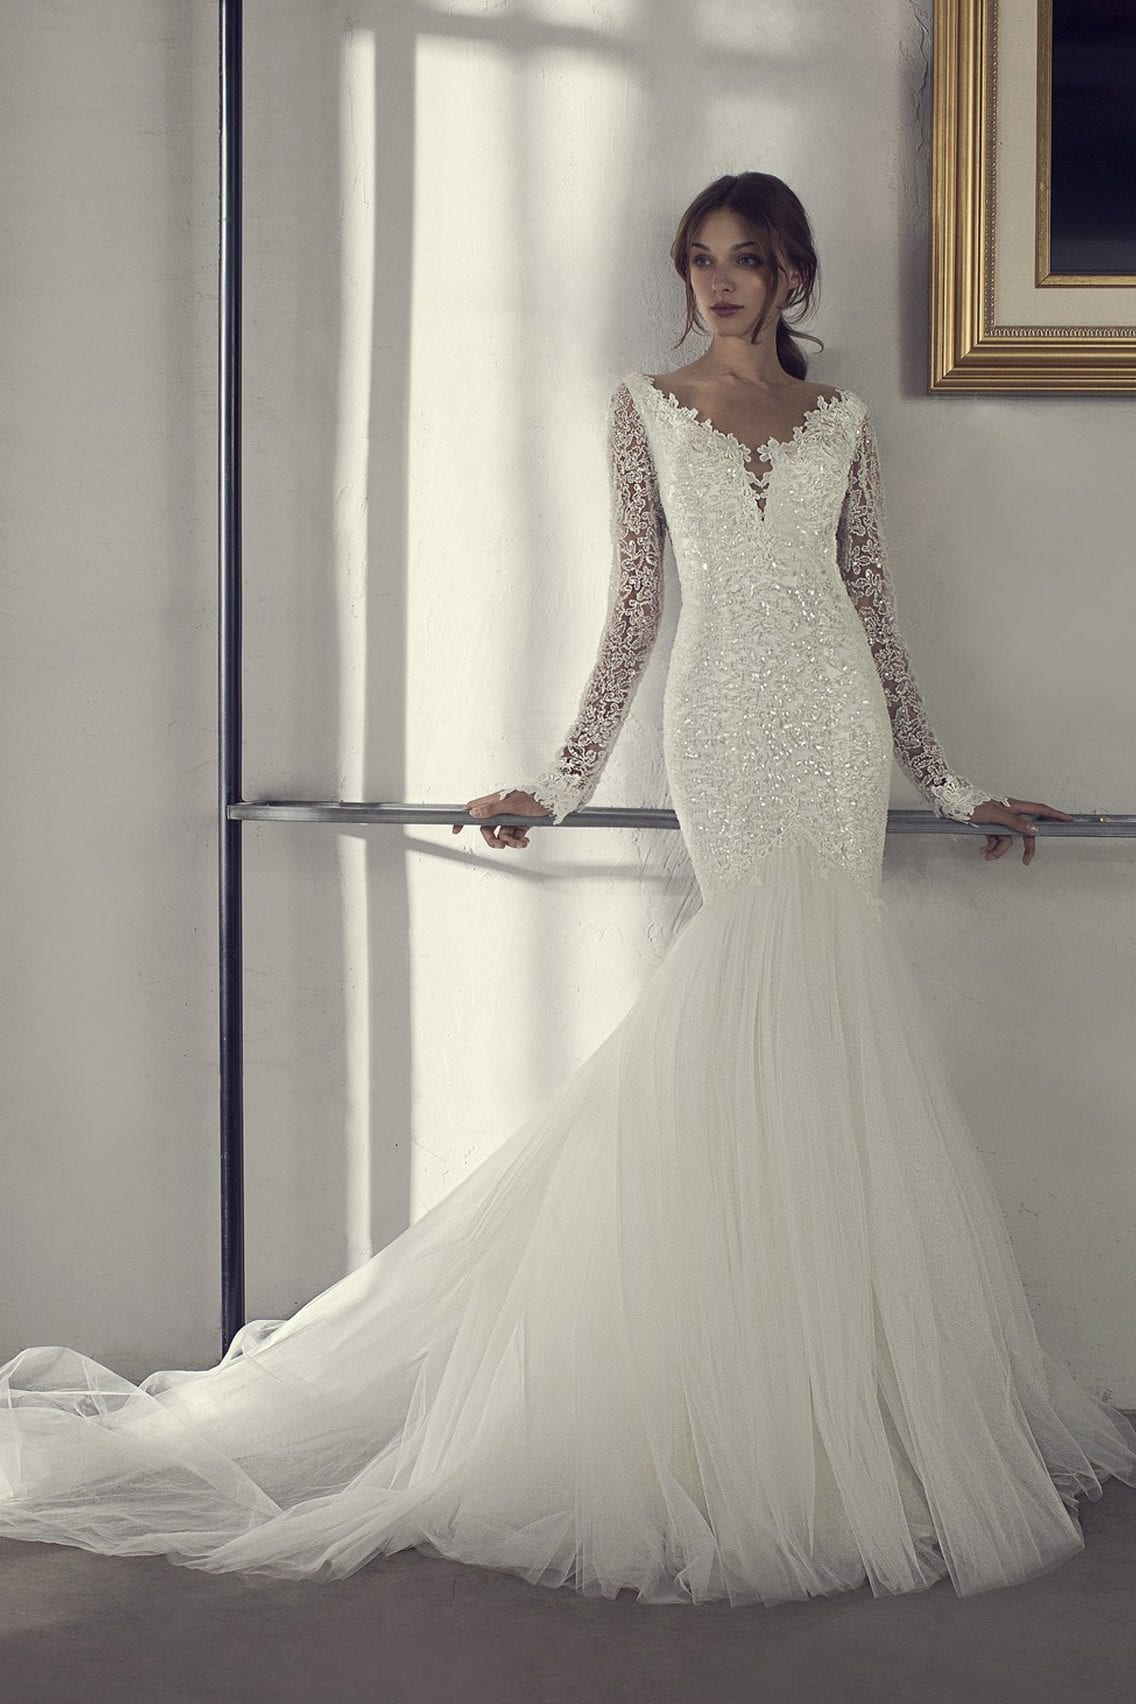 Sexy-White-Bridal-Outfit-Ideas-For-Women